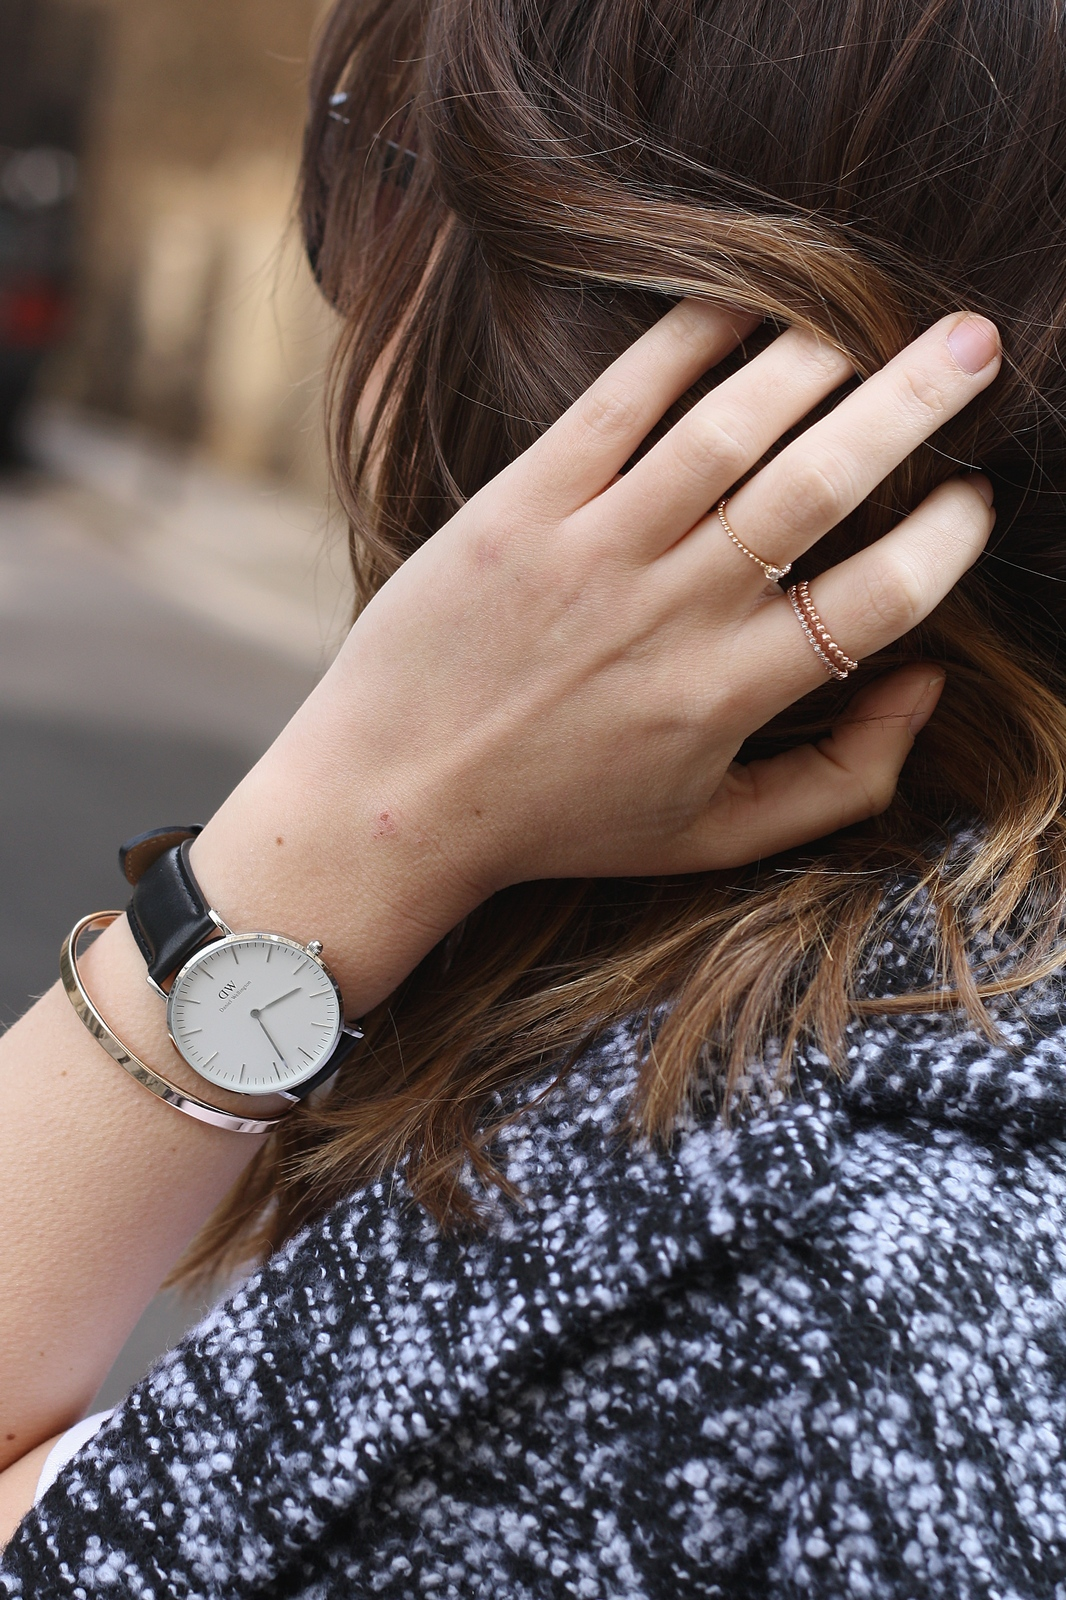 Blog mode femme Paris - Du style, Madame - Streetstyle - look - daniel wellington